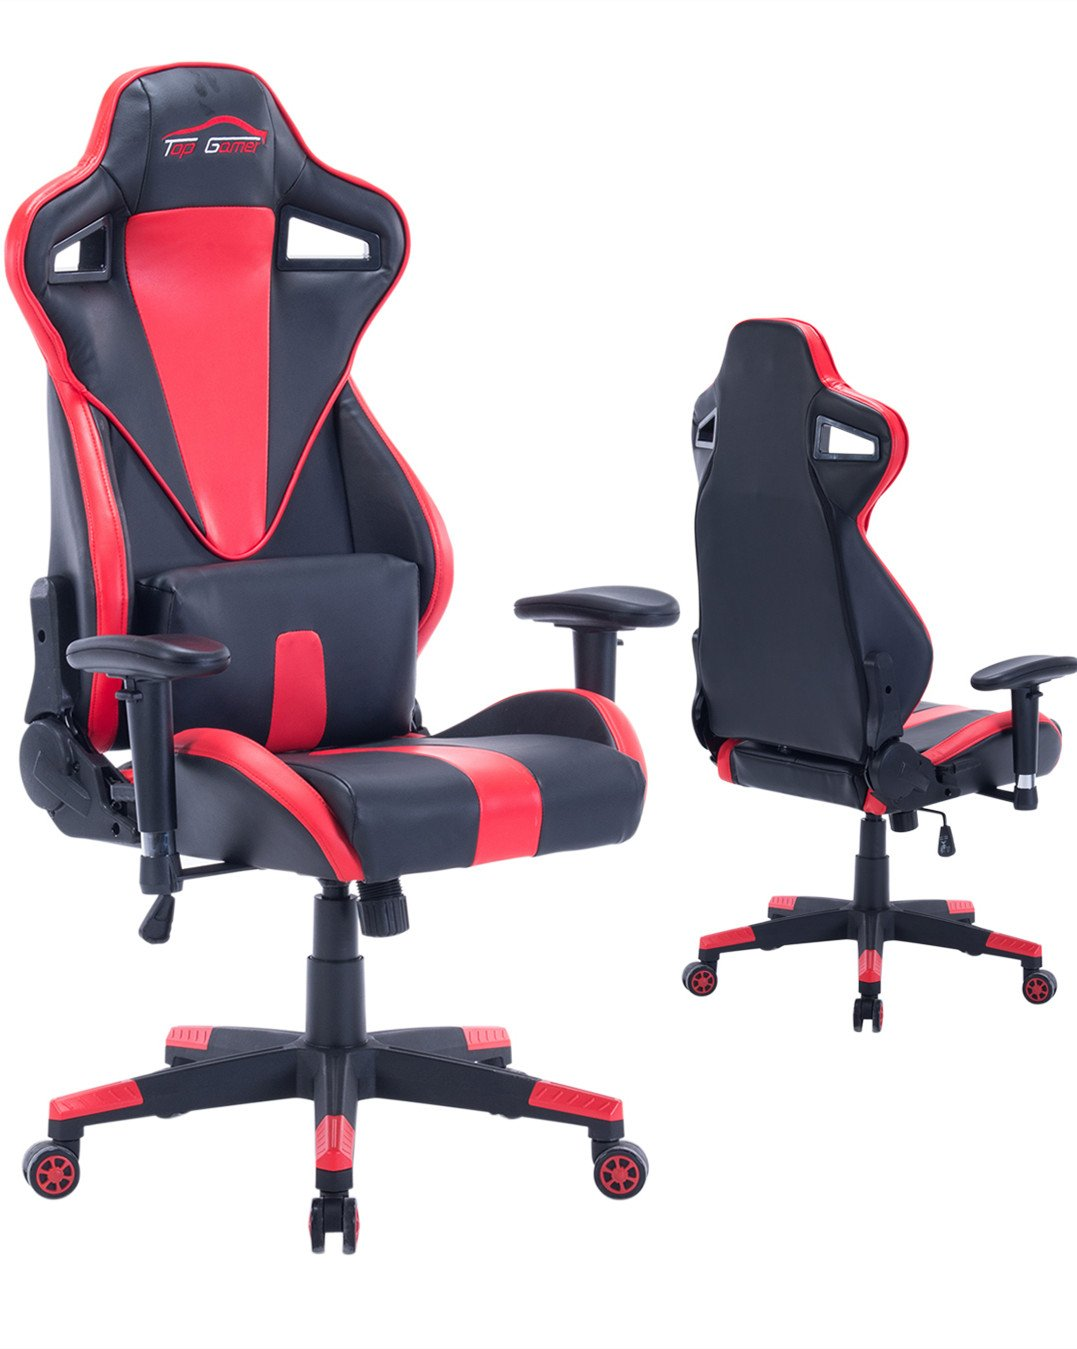 Ergonomic Gaming Chair High Back Computer Chair (Red/Black,6)